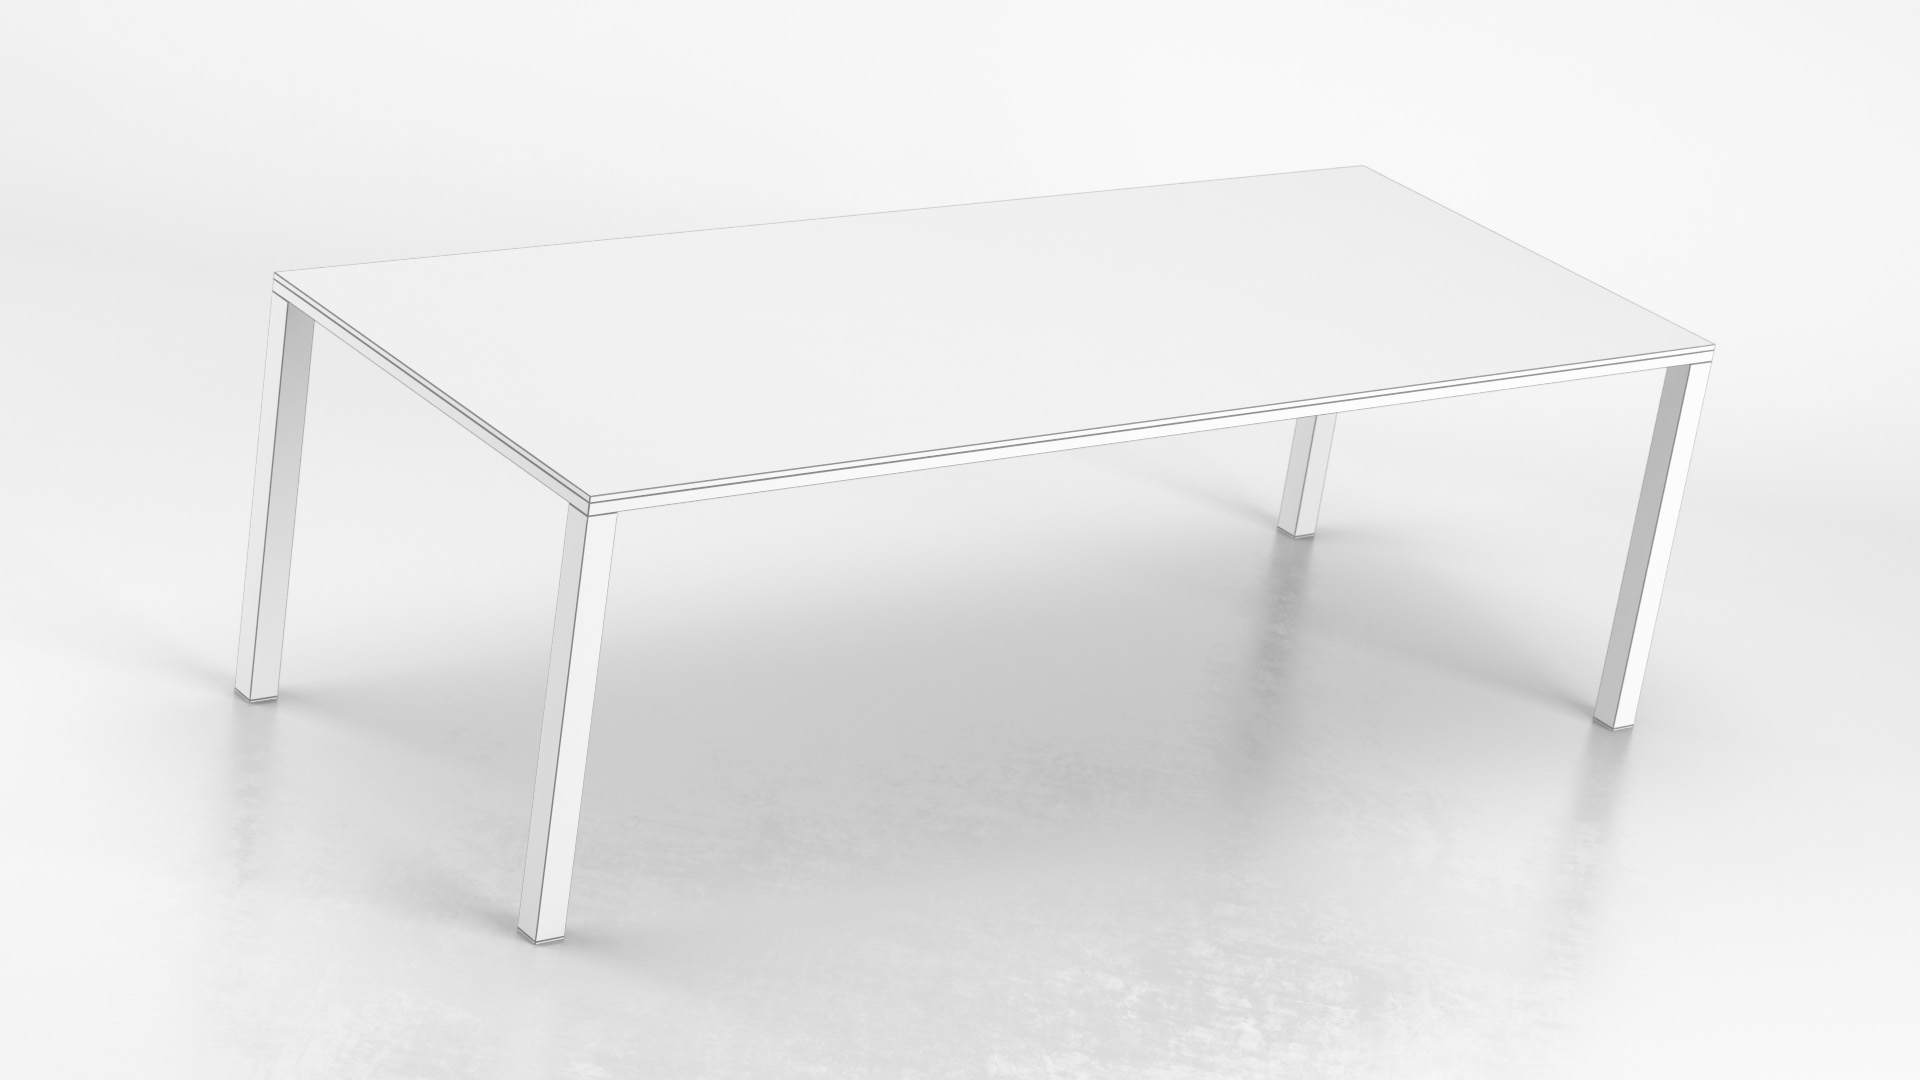 Tribu_Essentiel_Table_WhiteSet_01_wire_0003